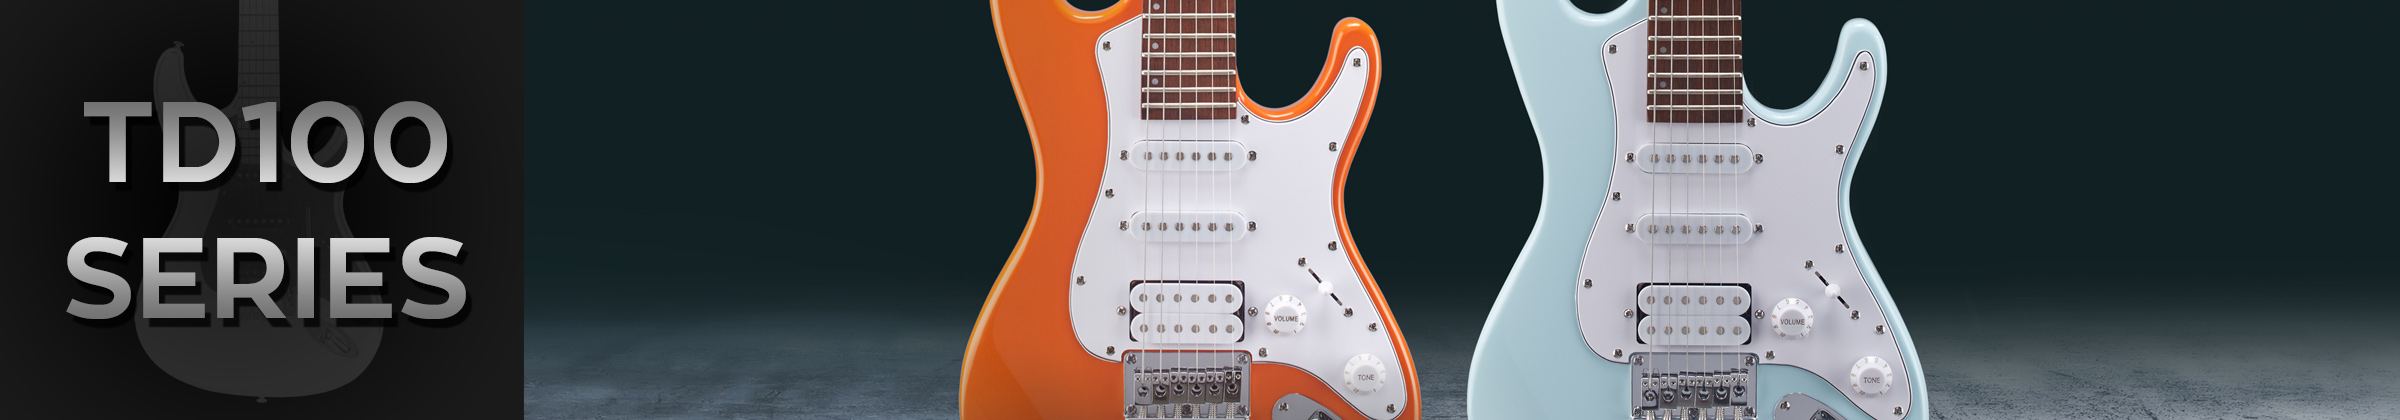 Mitchell TD100 Series | Mitchell Electric Guitars